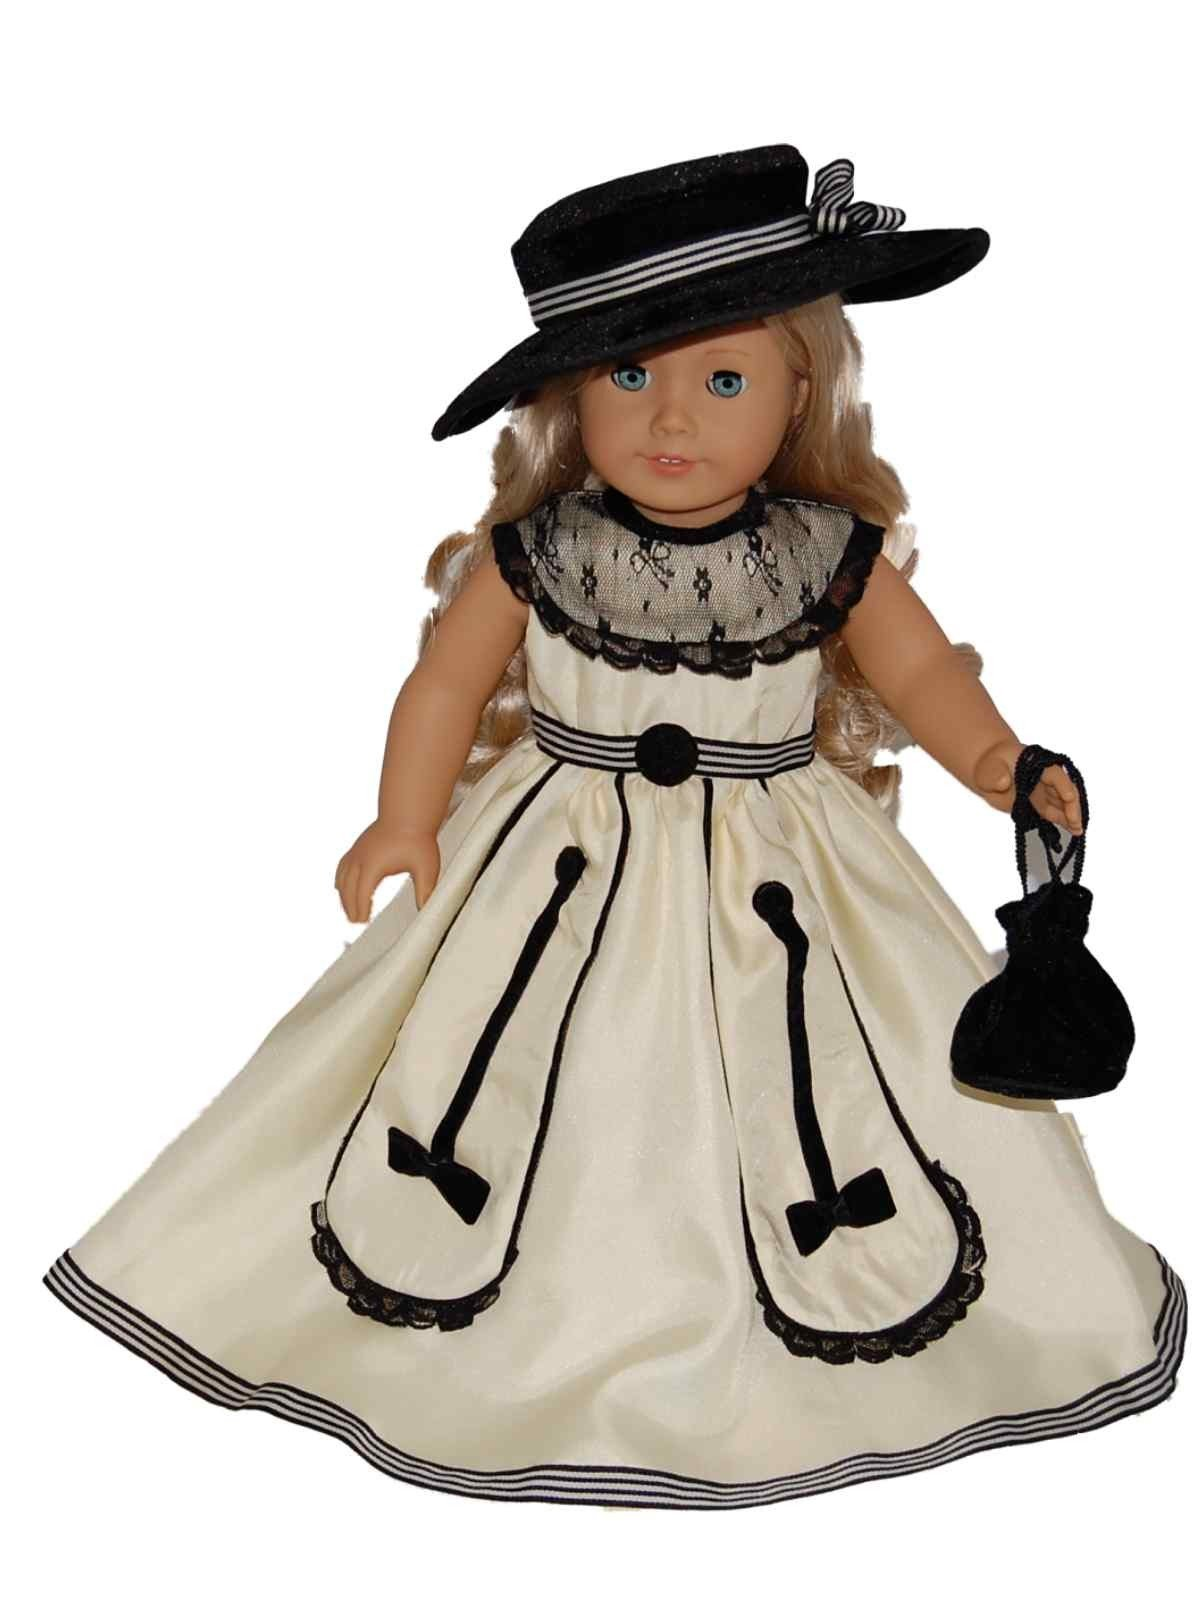 doll clothing and accessories for 18 dolls and american girl